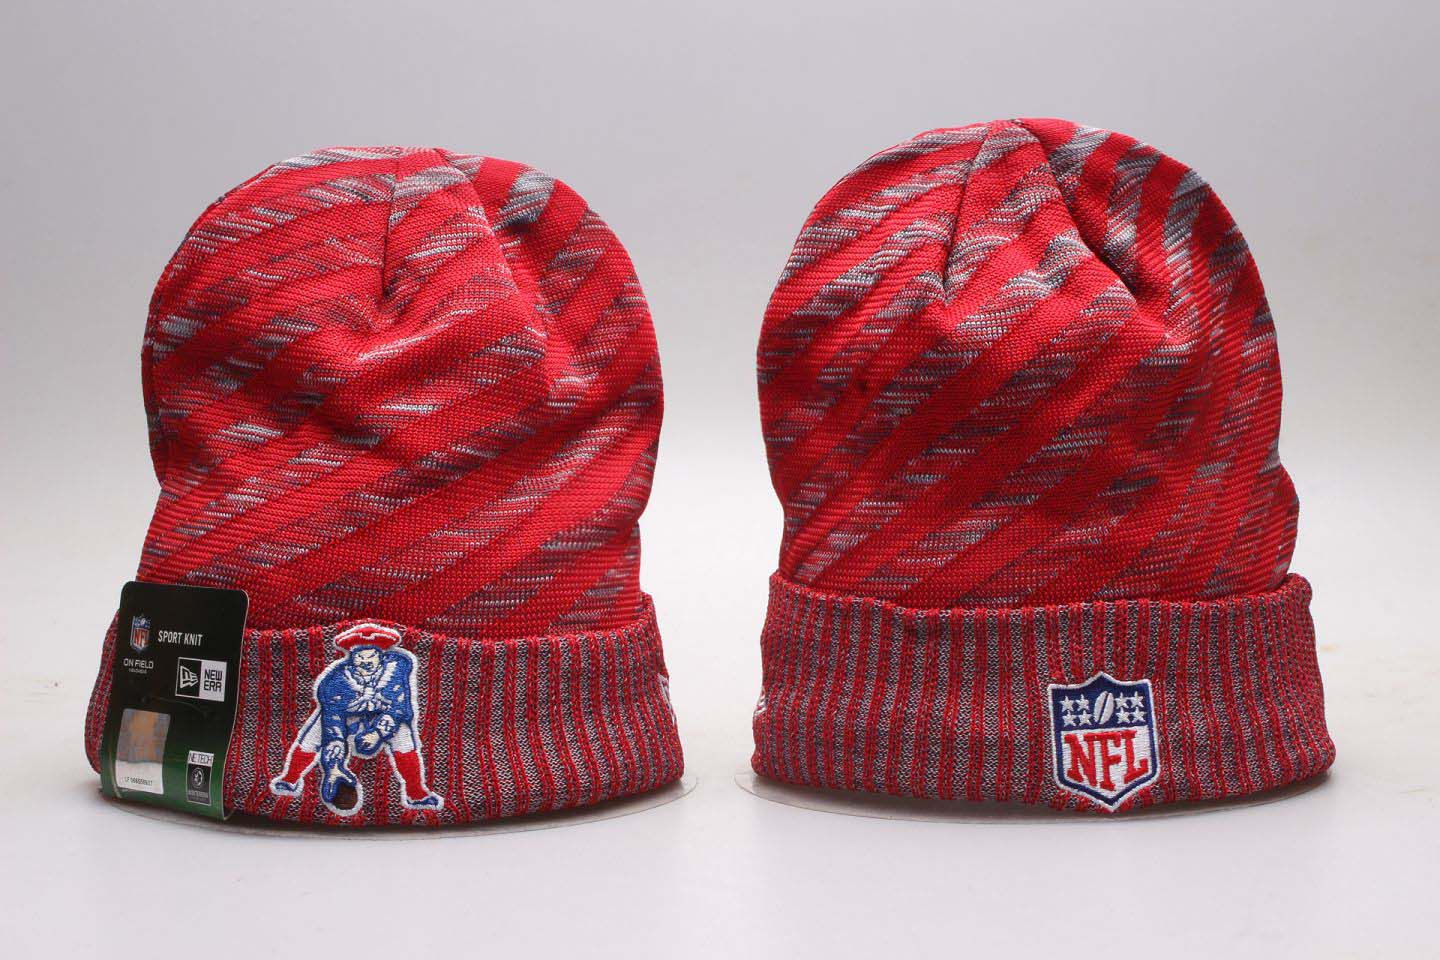 NFL New England Patriots Beanie hot hat22